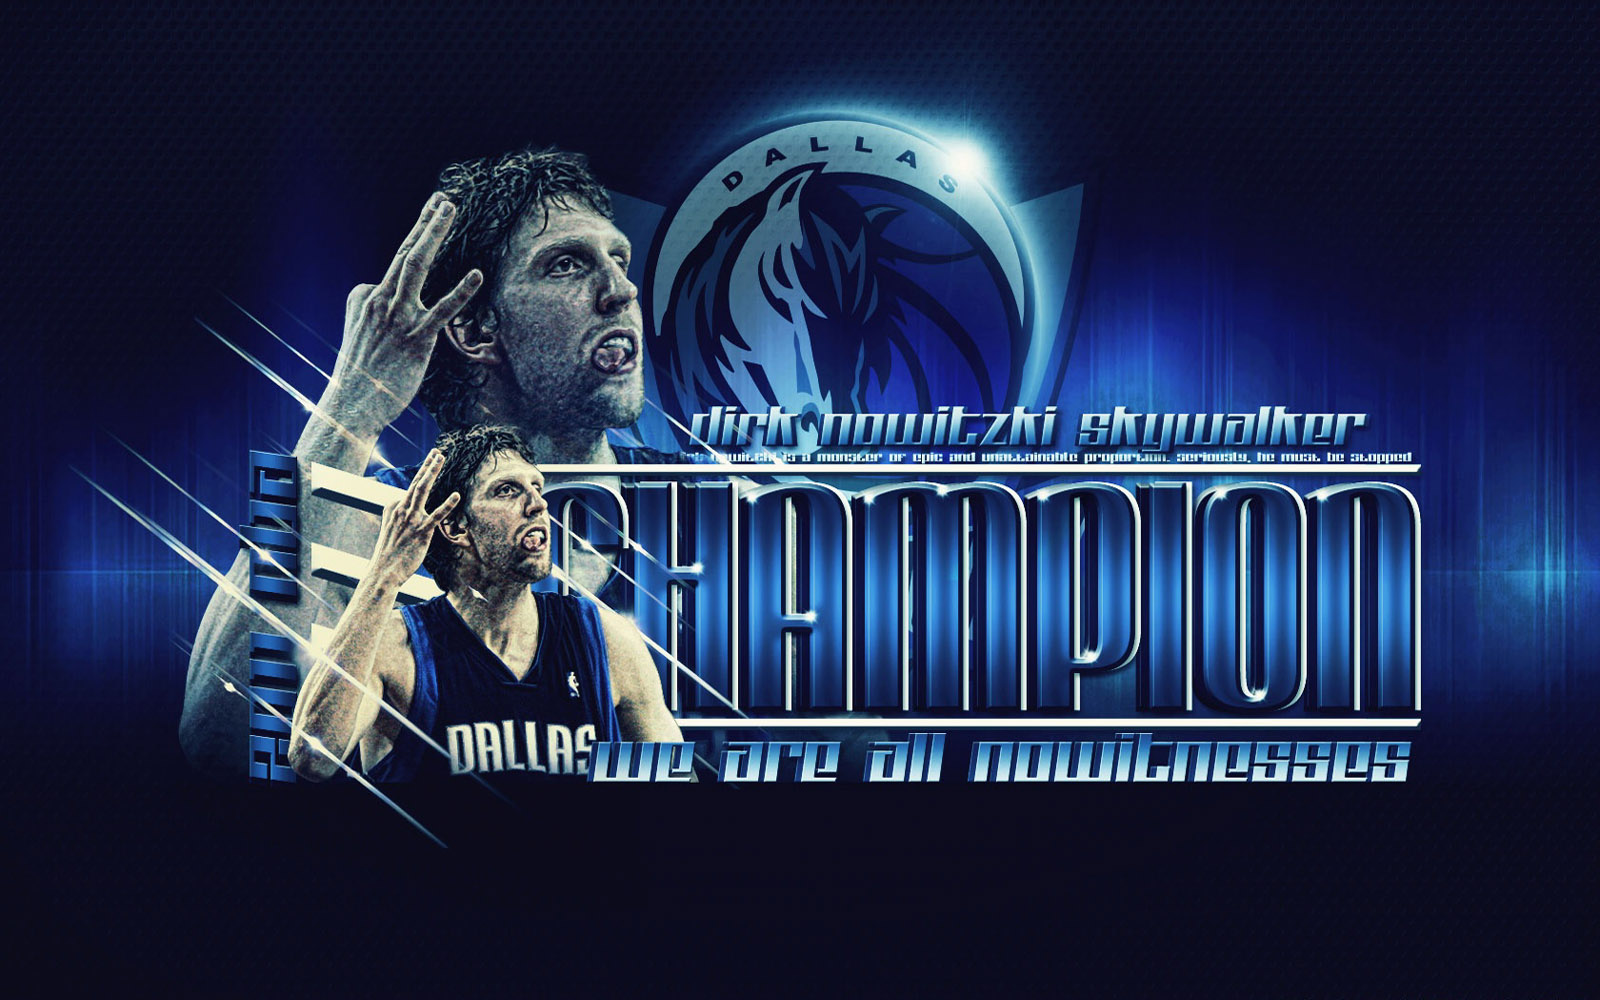 http://4.bp.blogspot.com/-dmrrahRhA40/UOiTmiKciUI/AAAAAAAAJi0/hX7X01fkKcA/s1600/Dirk_Nowitzki_We_Are_All_Nowitnesses_2013_Dallas_Mavericks_Hd_Desktop_Wallpaper_citiesandteams.blogspot.com.jpg